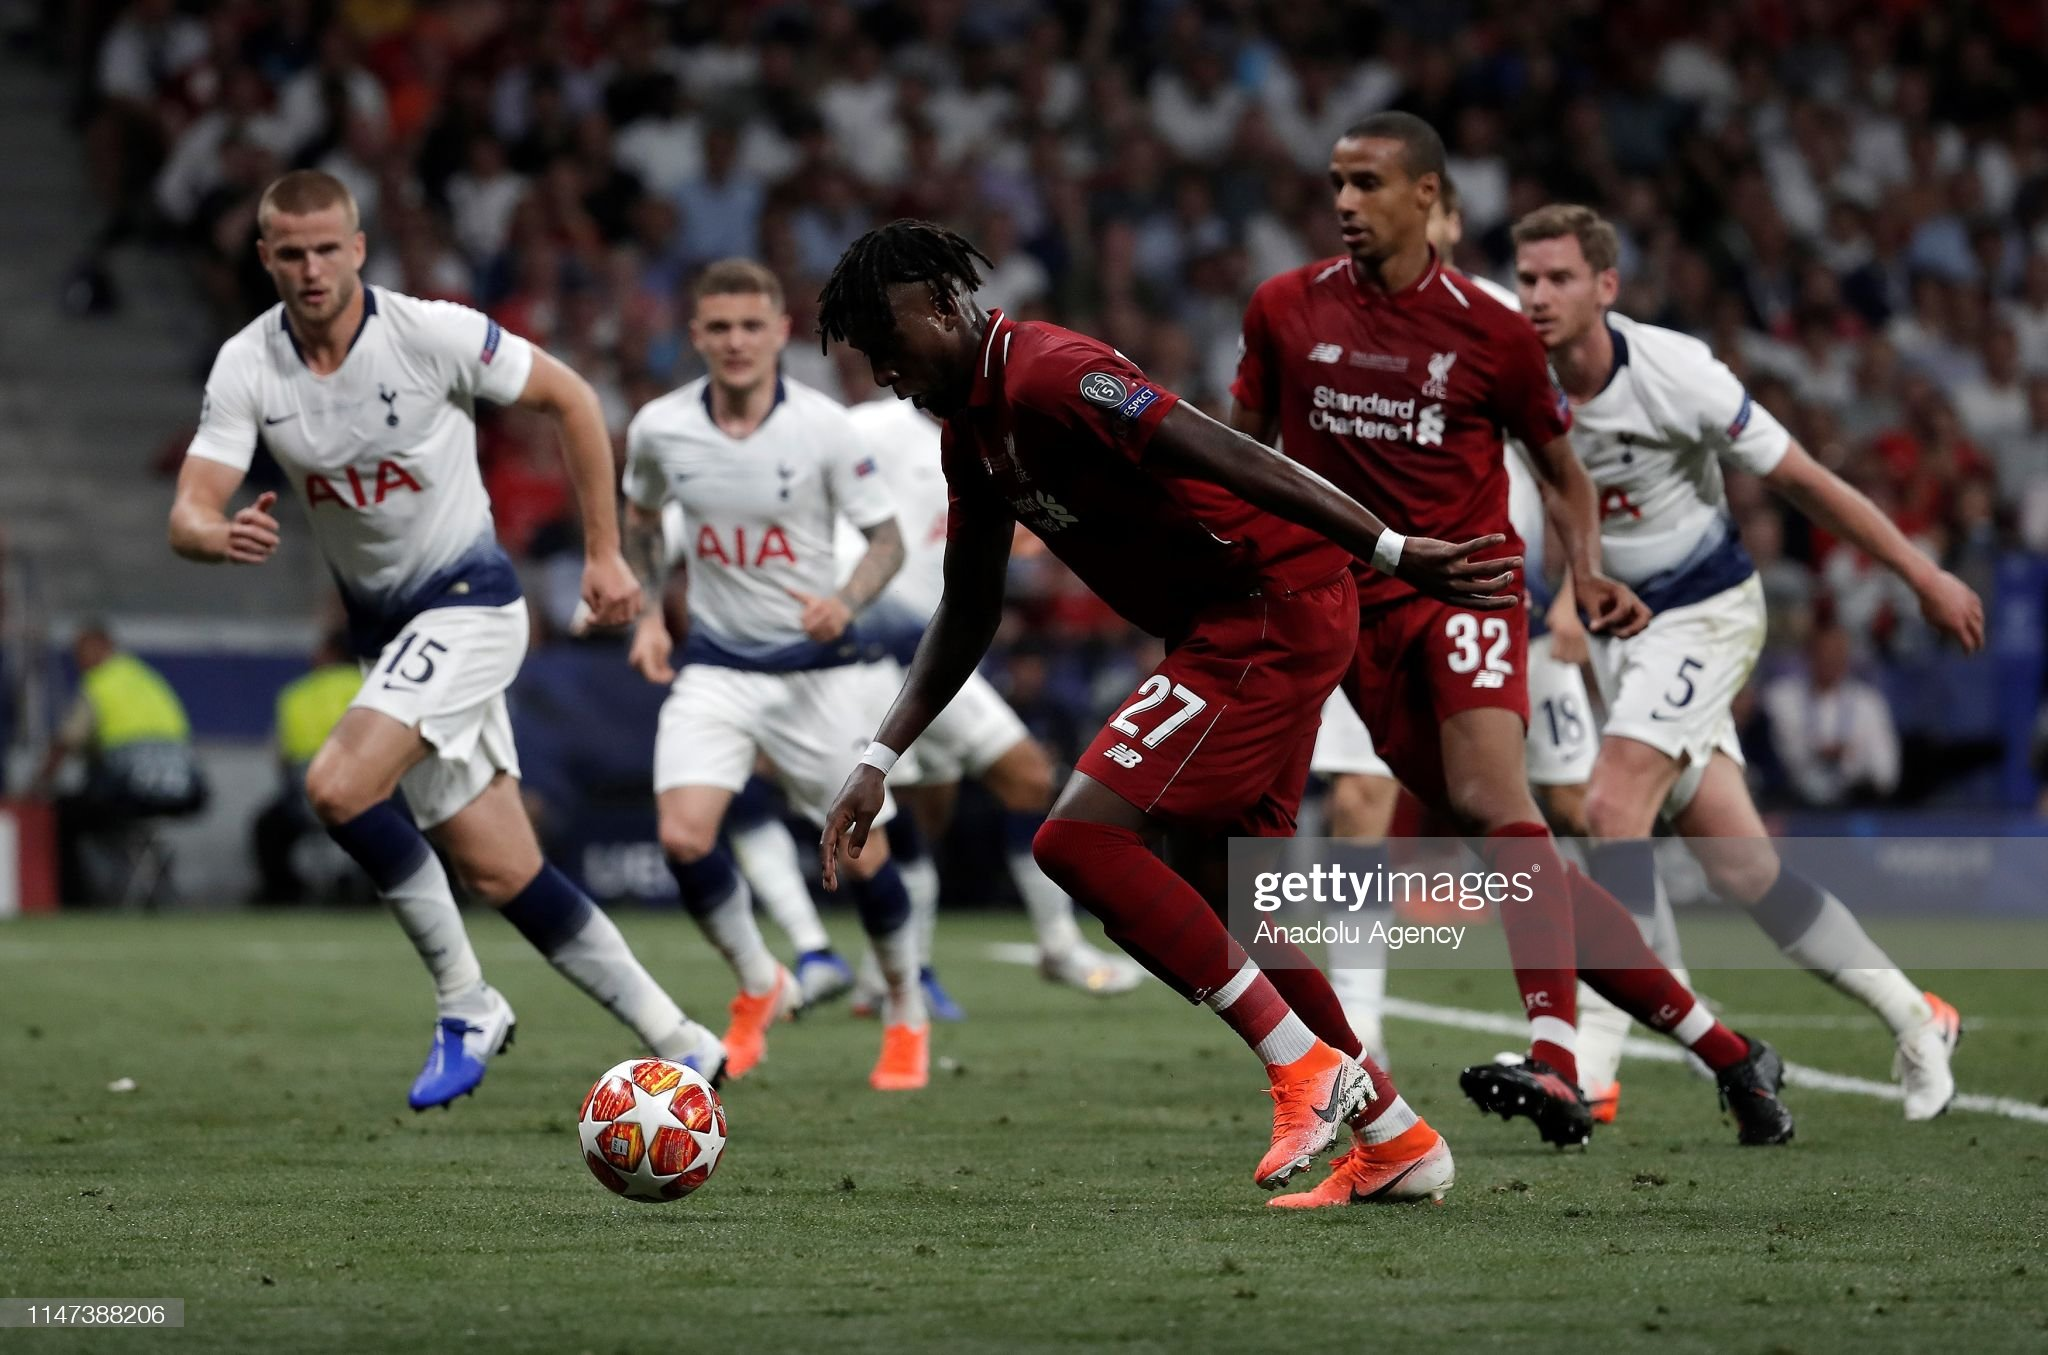 Liverpool v Tottenham preview, prediction and odds